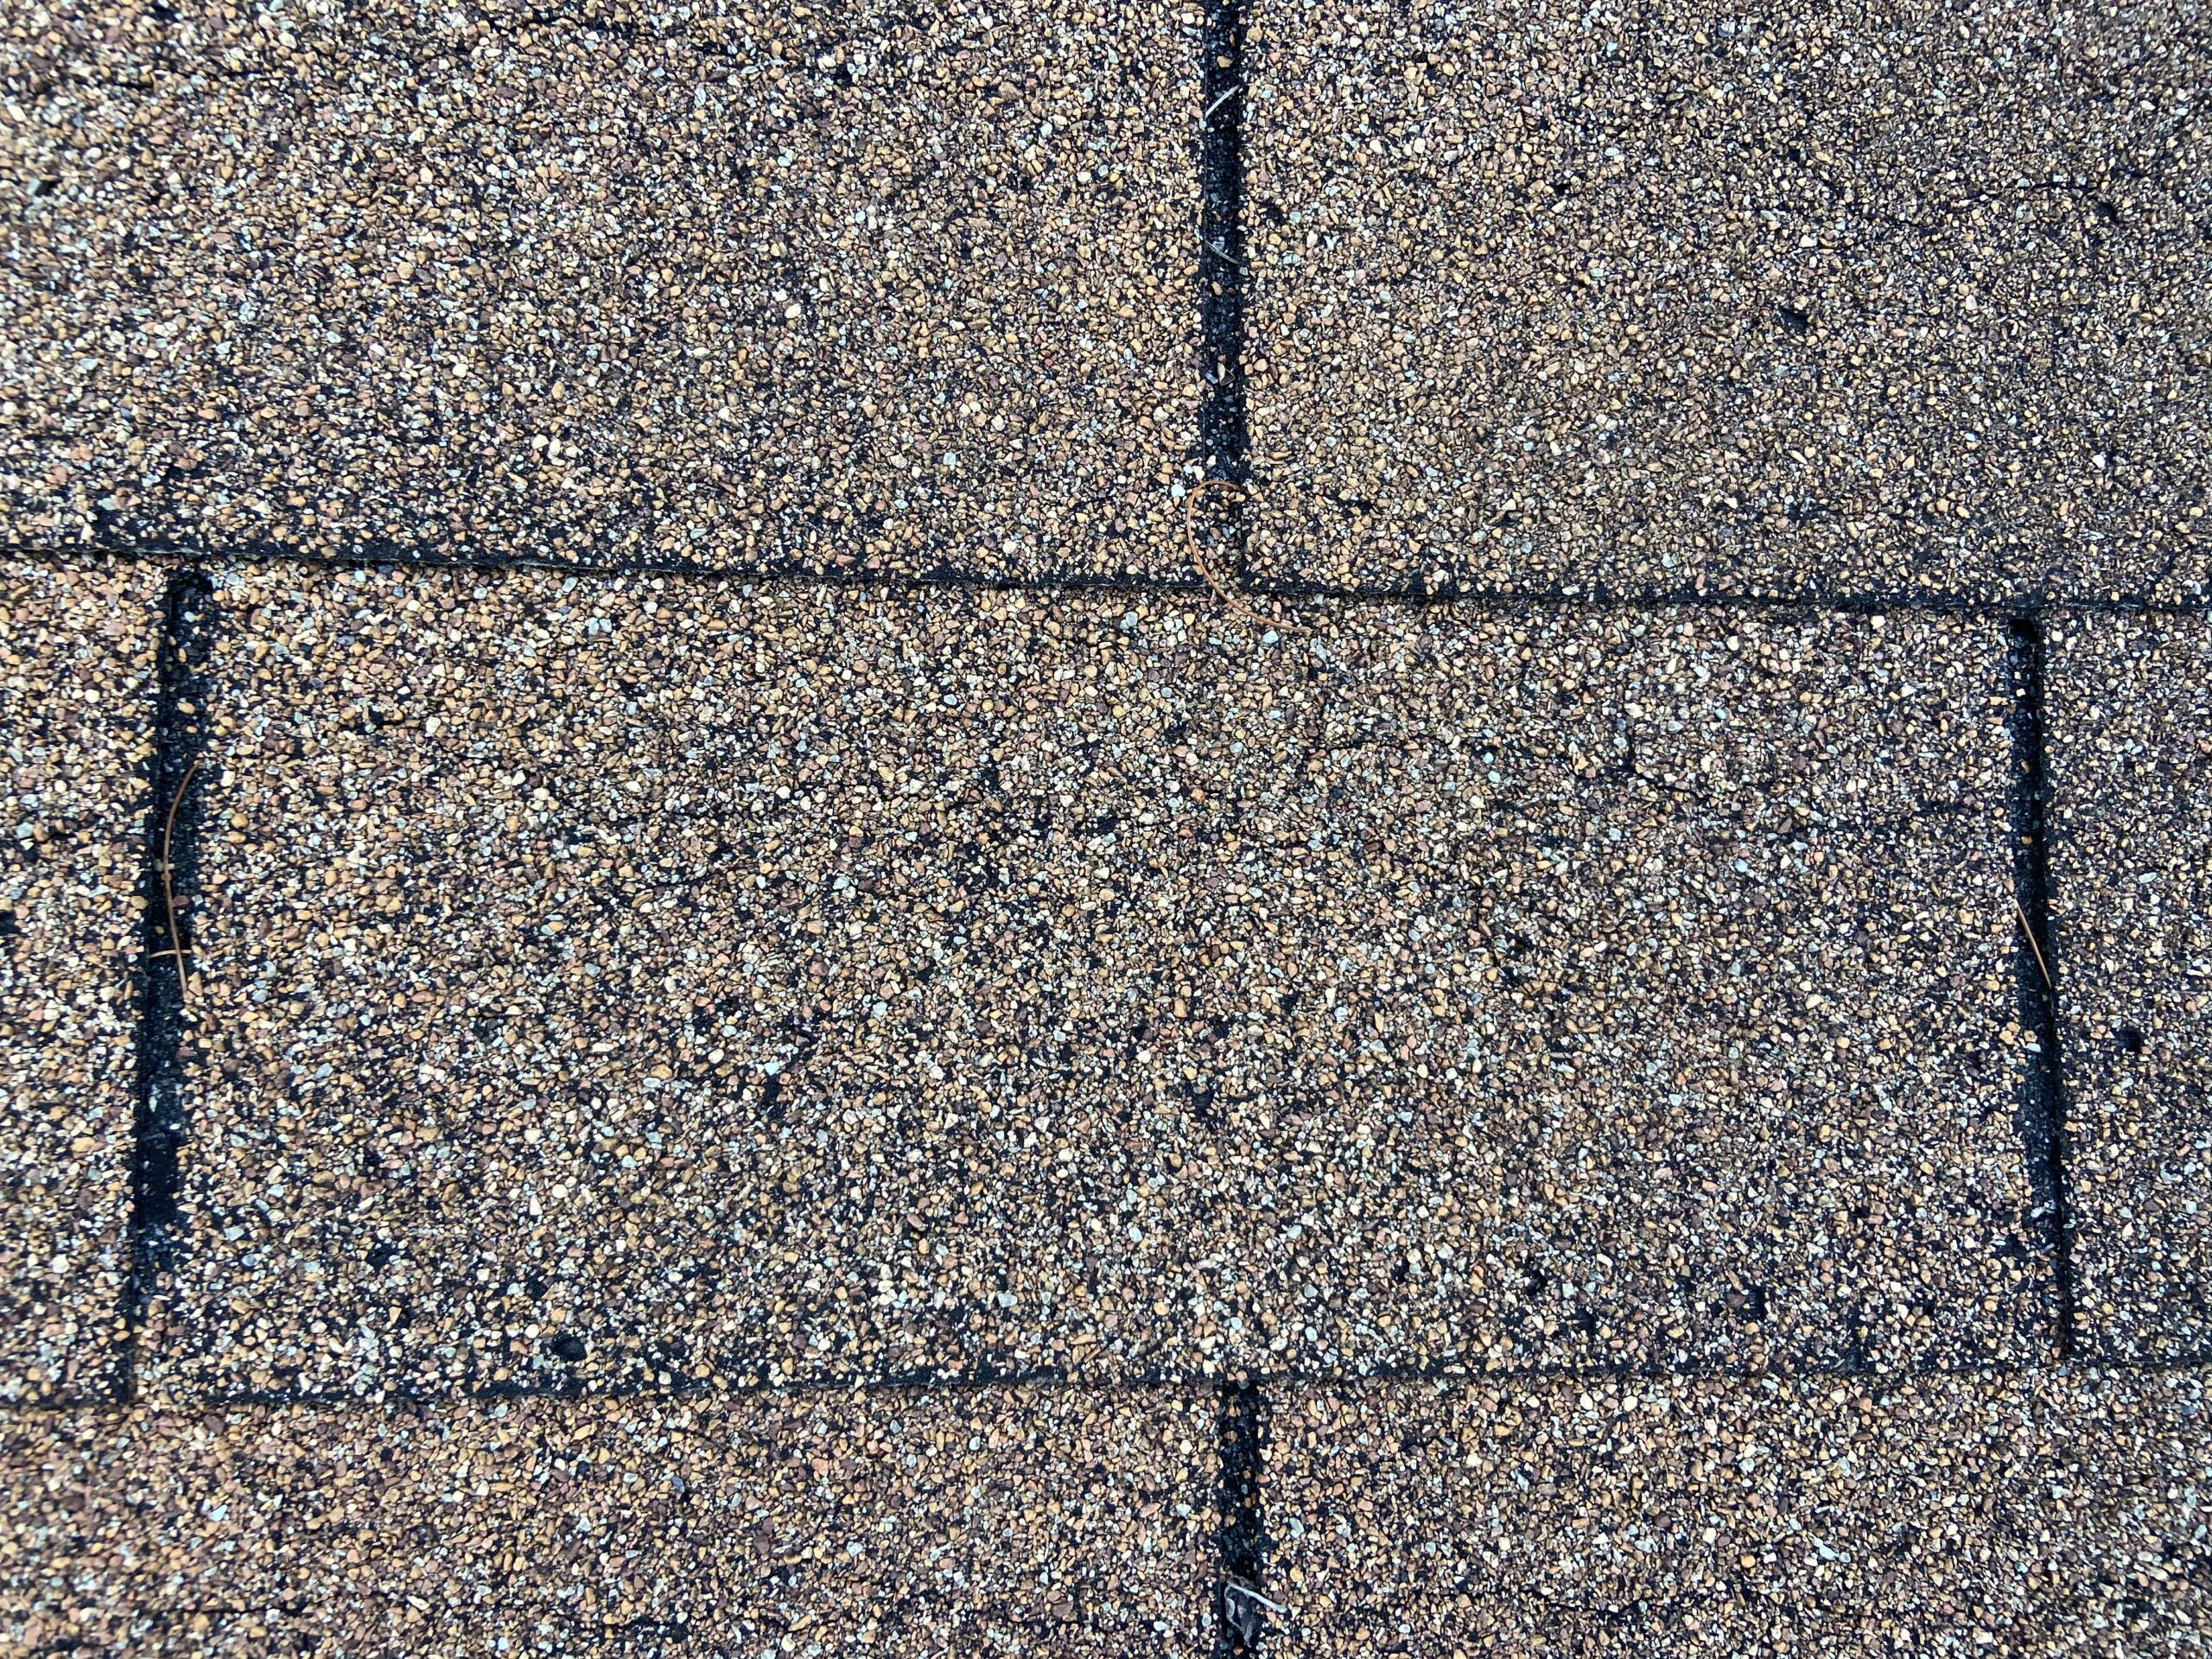 Shingles of Roof Are Cracking